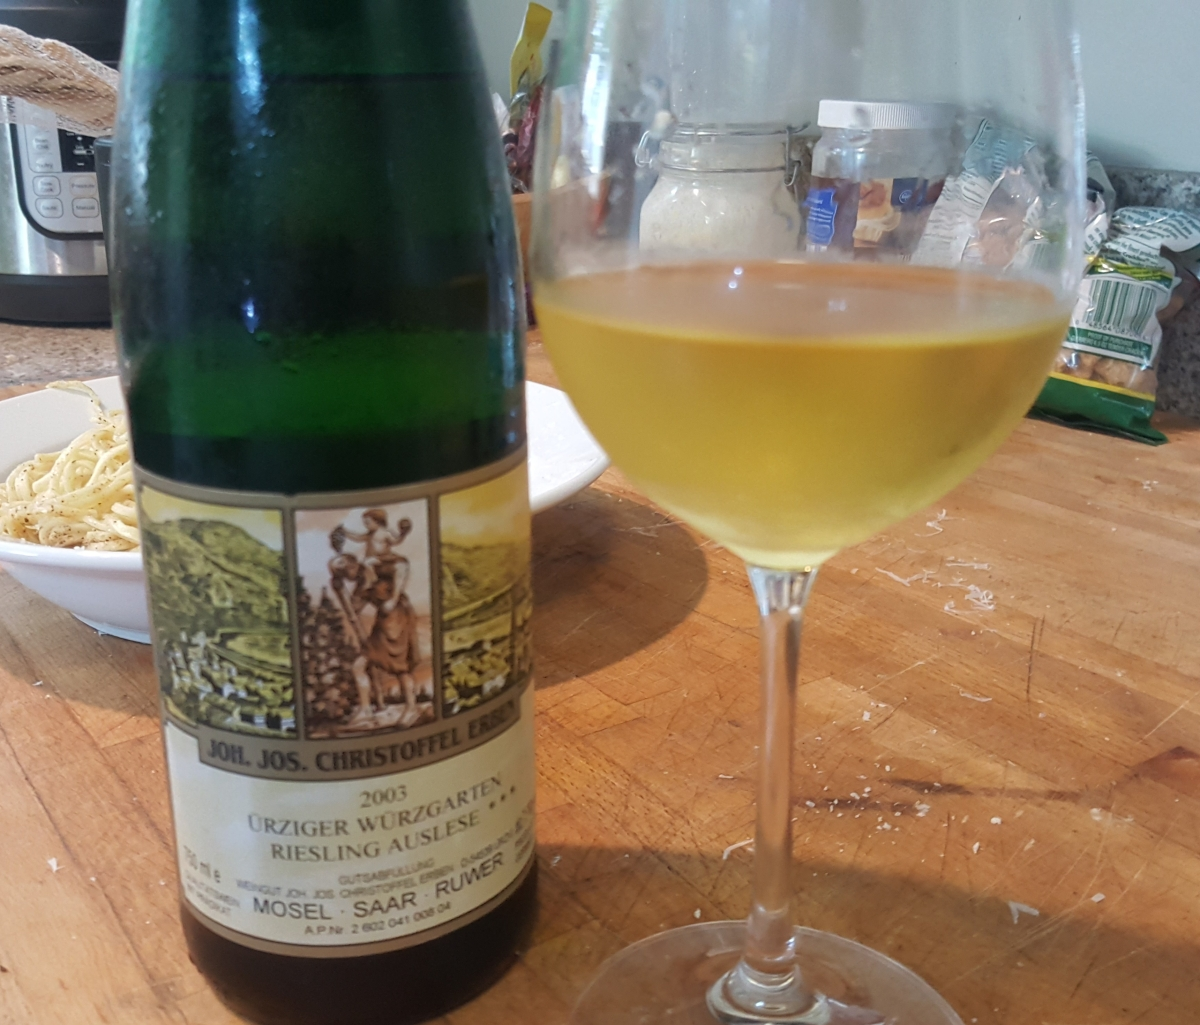 A real mouthful: The 2003 Joh. Jos. Christoffel Erben Ürziger Würzgarten Riesling Auslese ***